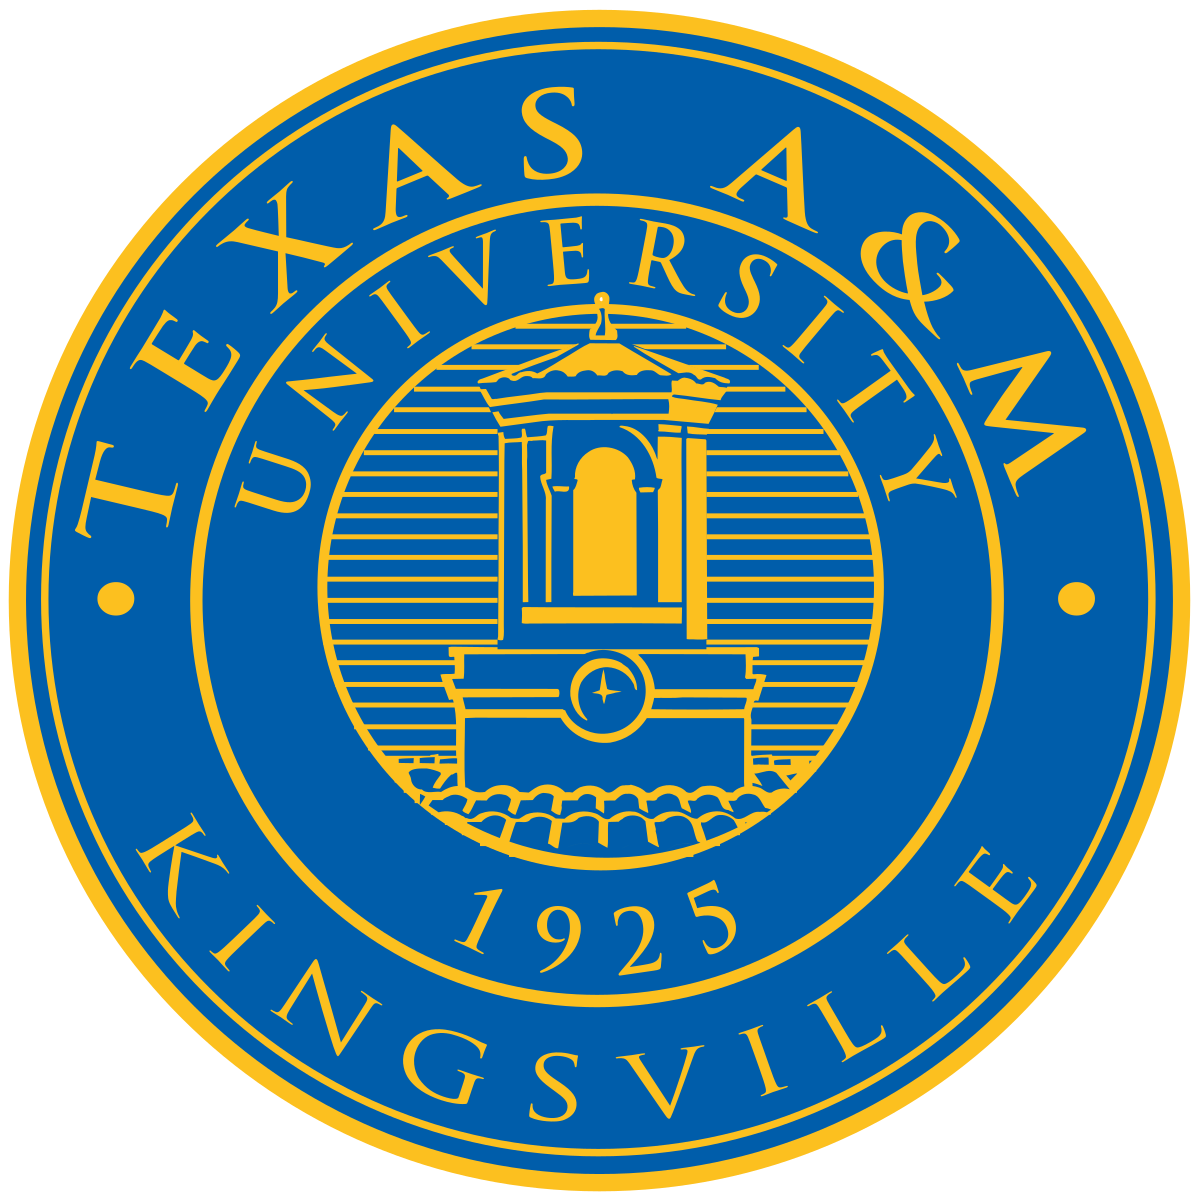 Cooperation with TEXAS A&M University, KINGSVILLE